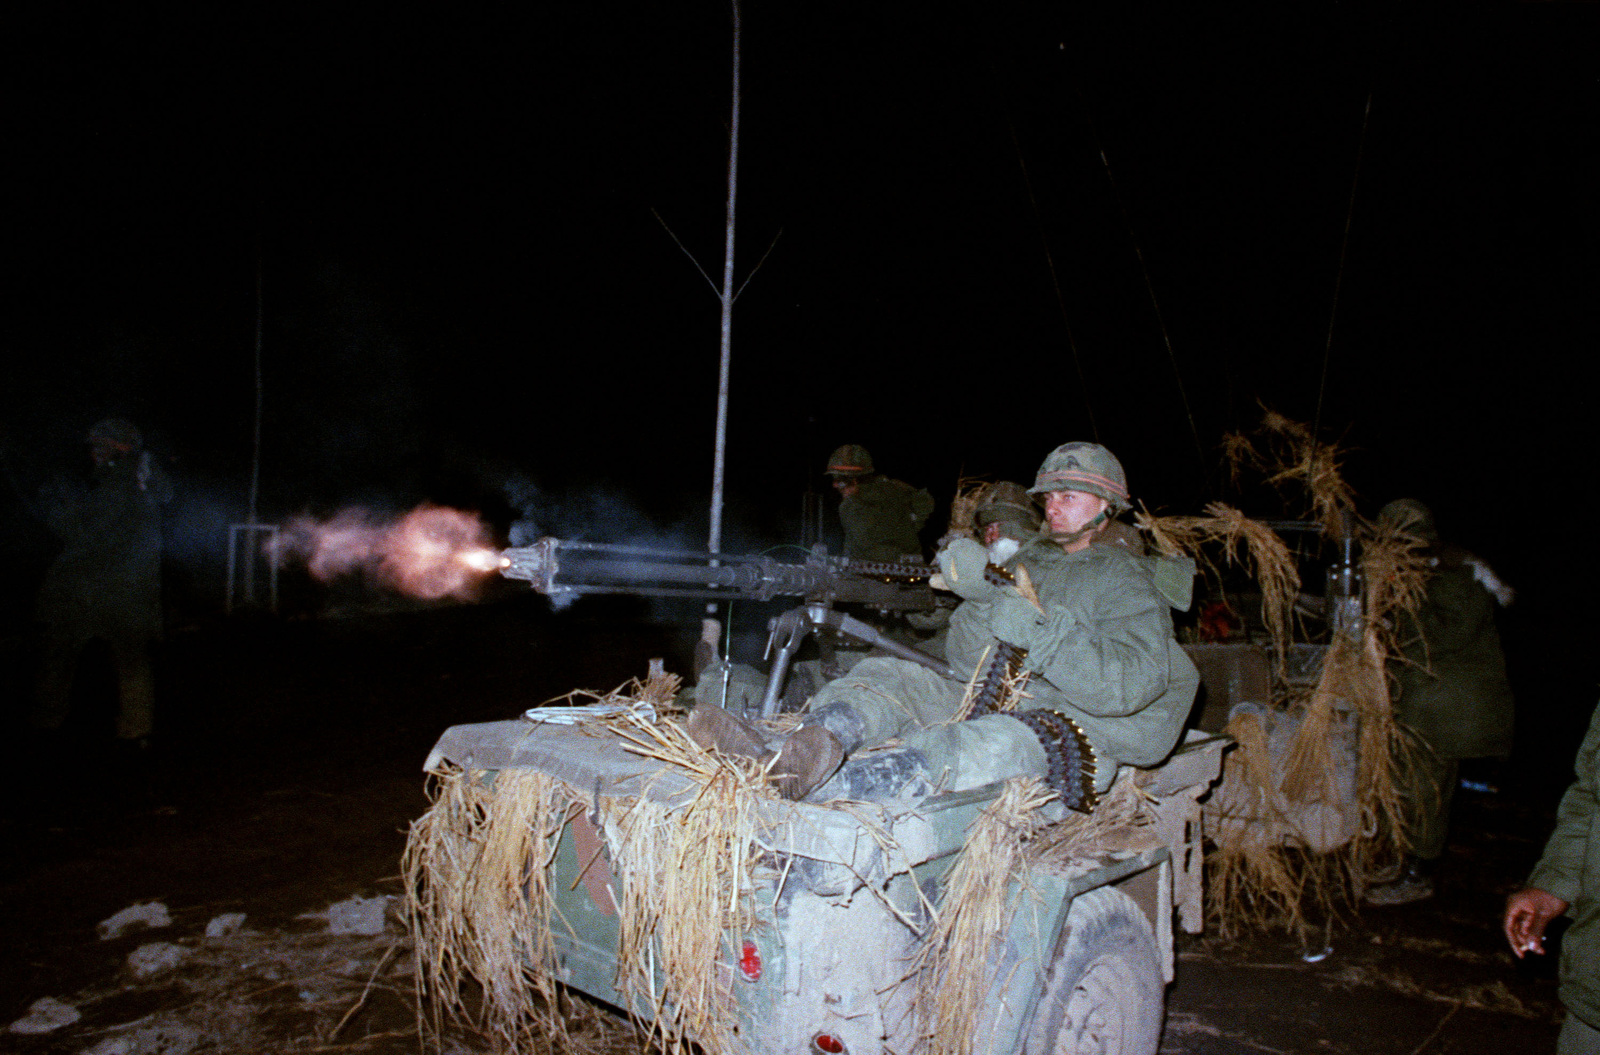 Members of Company B, 1ST Battalion, 5th Infantry Division (Orange Forces), fire .50-caliber machine guns against attacking Blue Forces during the joint Korean/United States training exercise TEAM SPIRIT '83